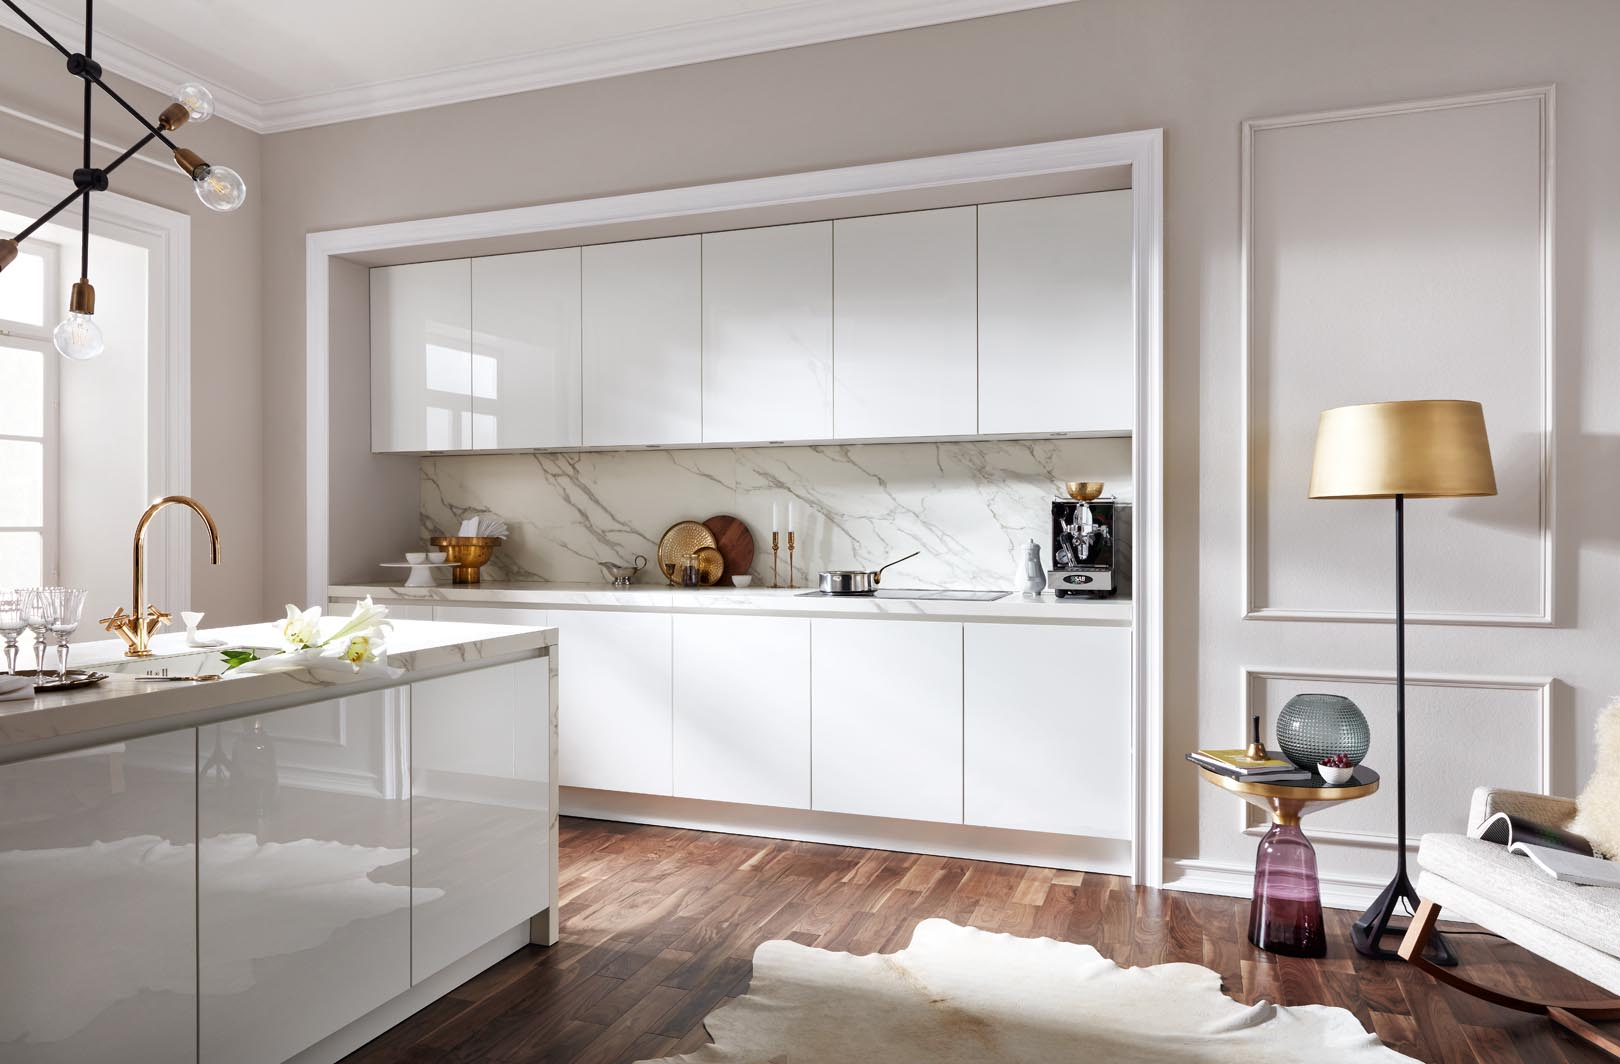 Best Closets Amp Kitchens Stores In Uae Luxury Customized